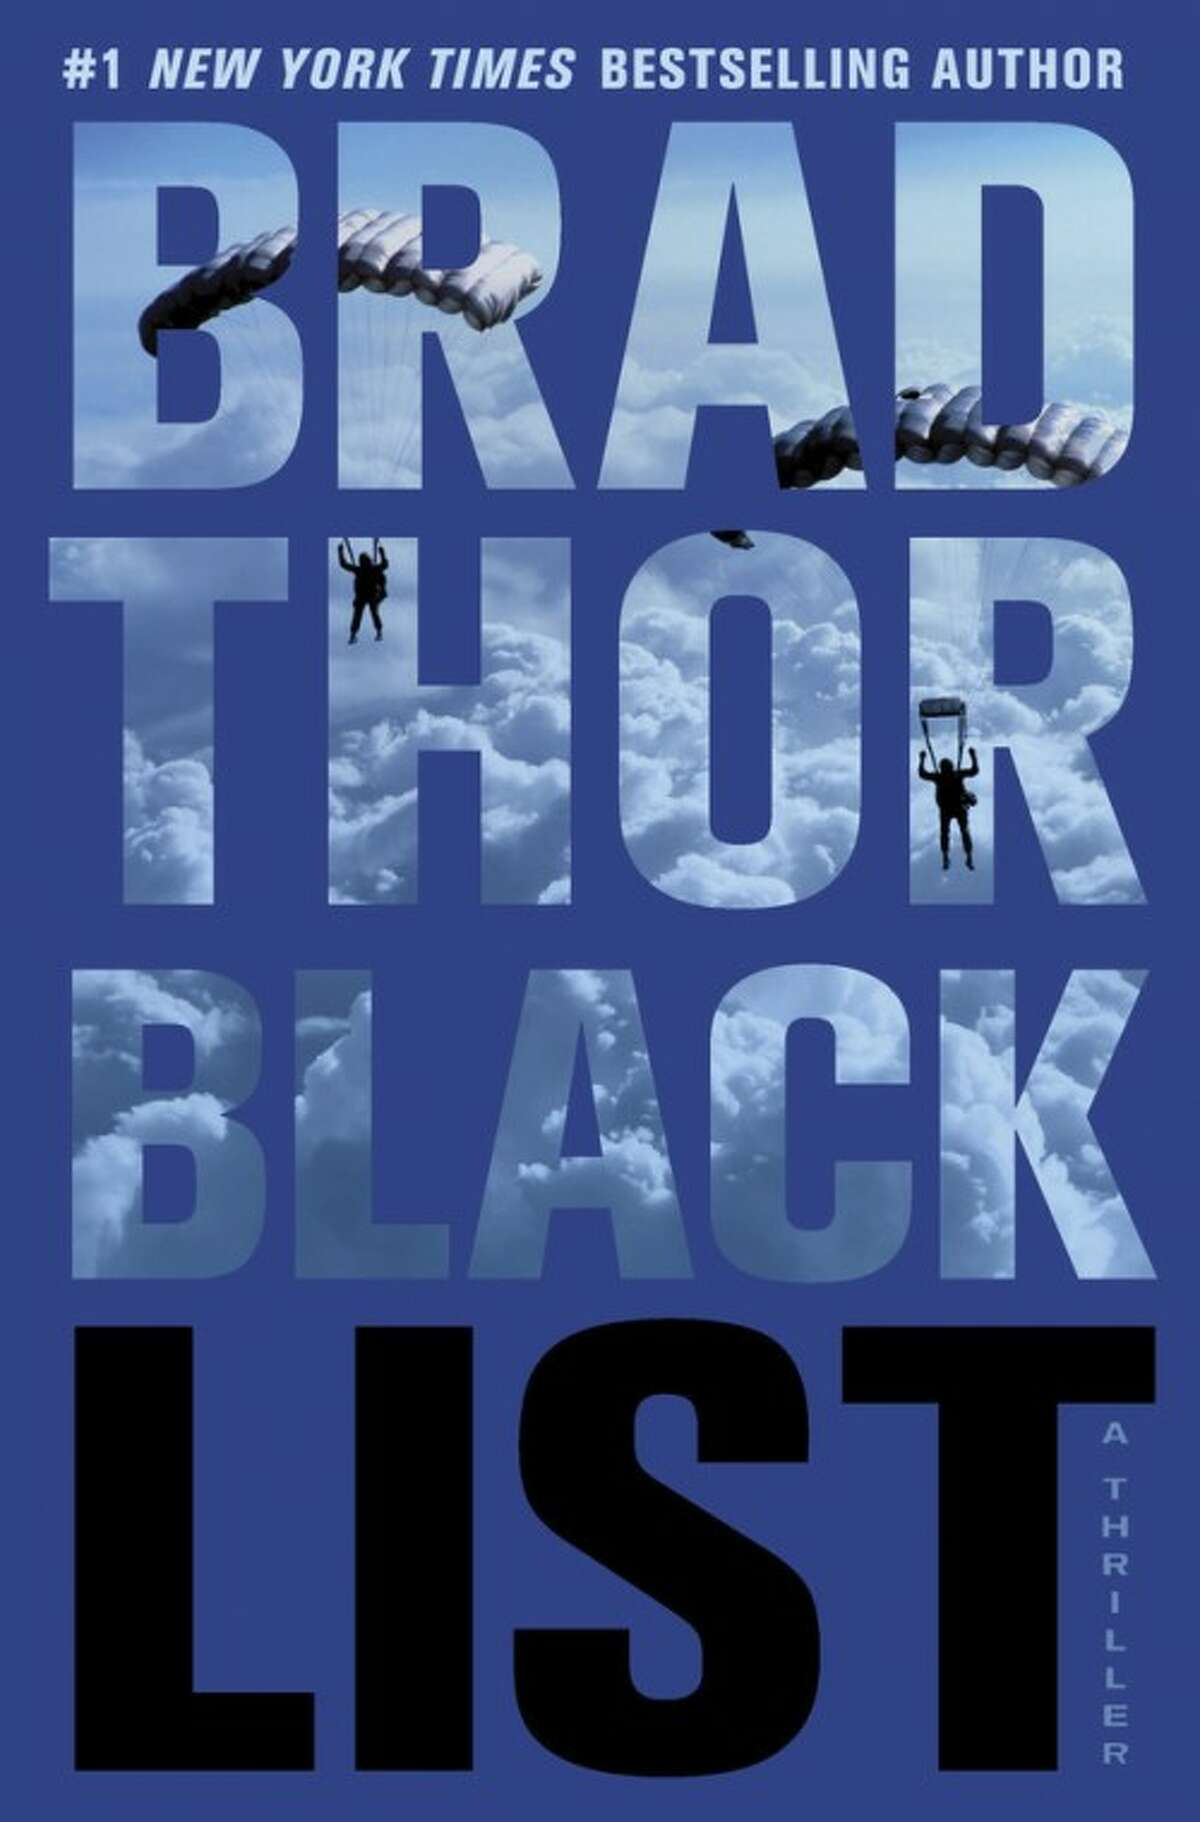 """This book cover image released by Atria shows """"Black List,"""" by Brad Thor. (AP Photo/Atria)"""